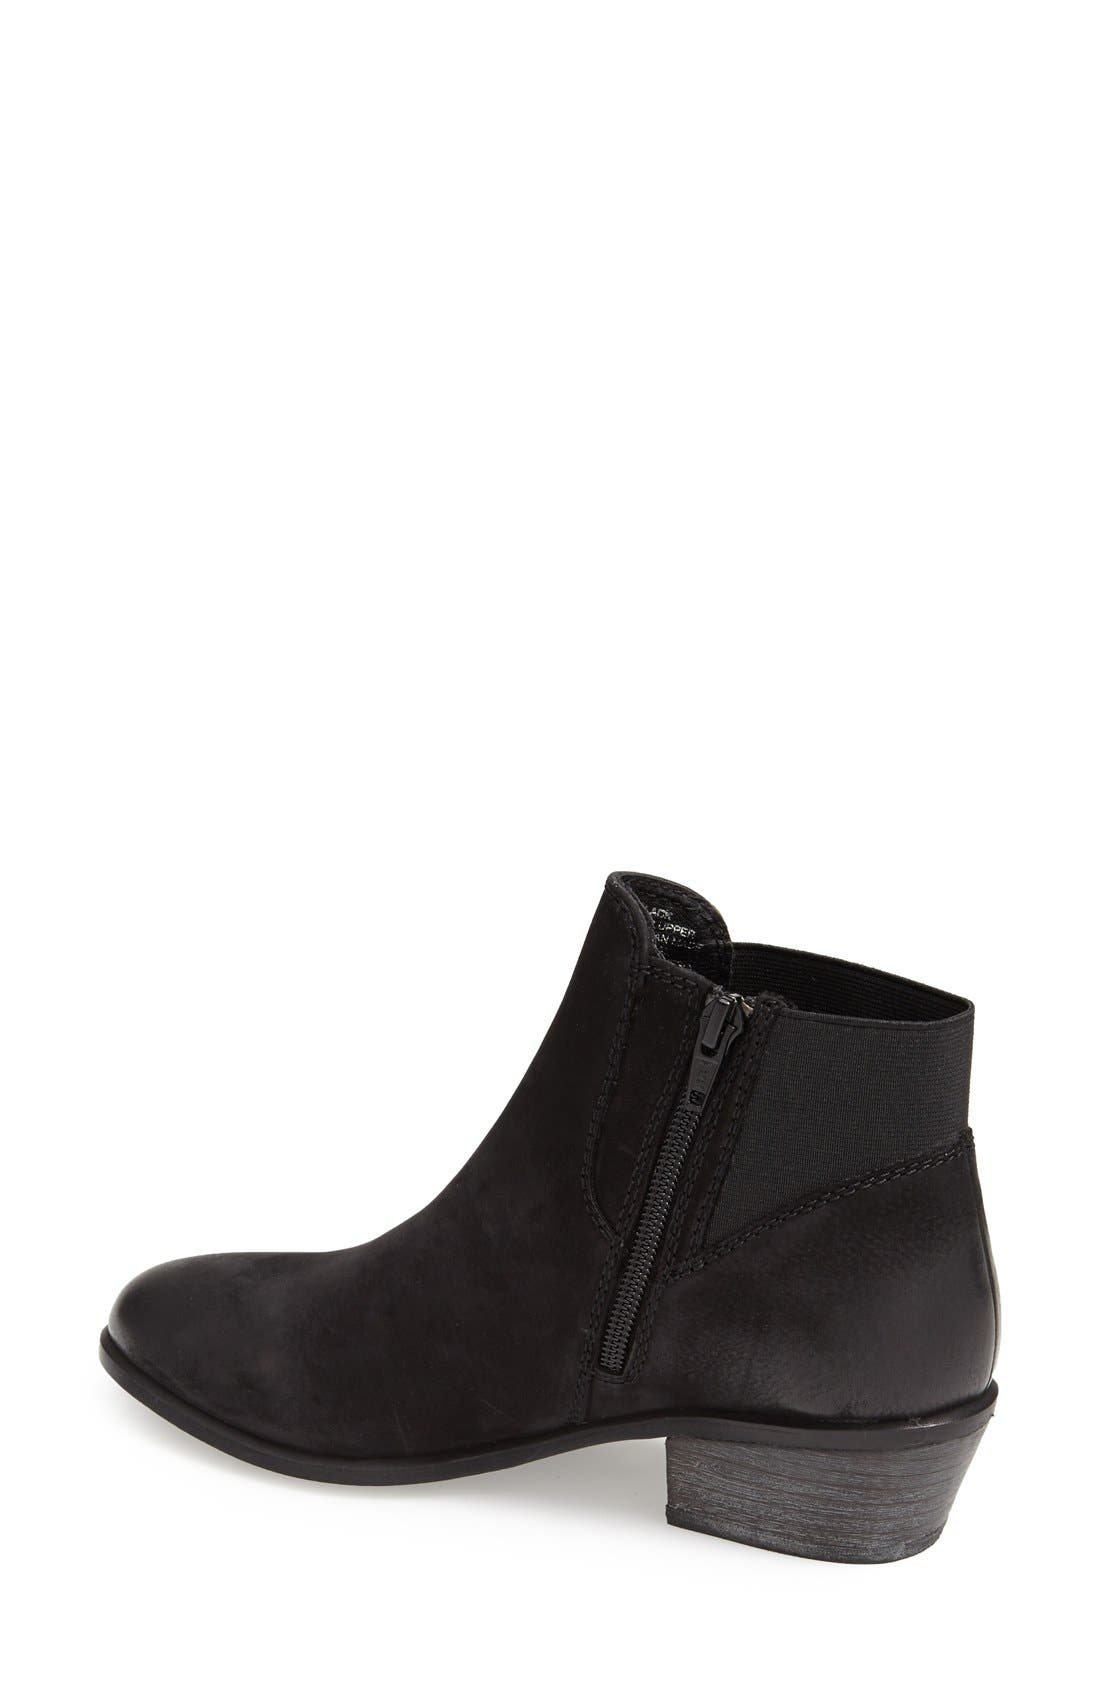 'Rozamare' Leather Ankle Bootie,                             Alternate thumbnail 2, color,                             001